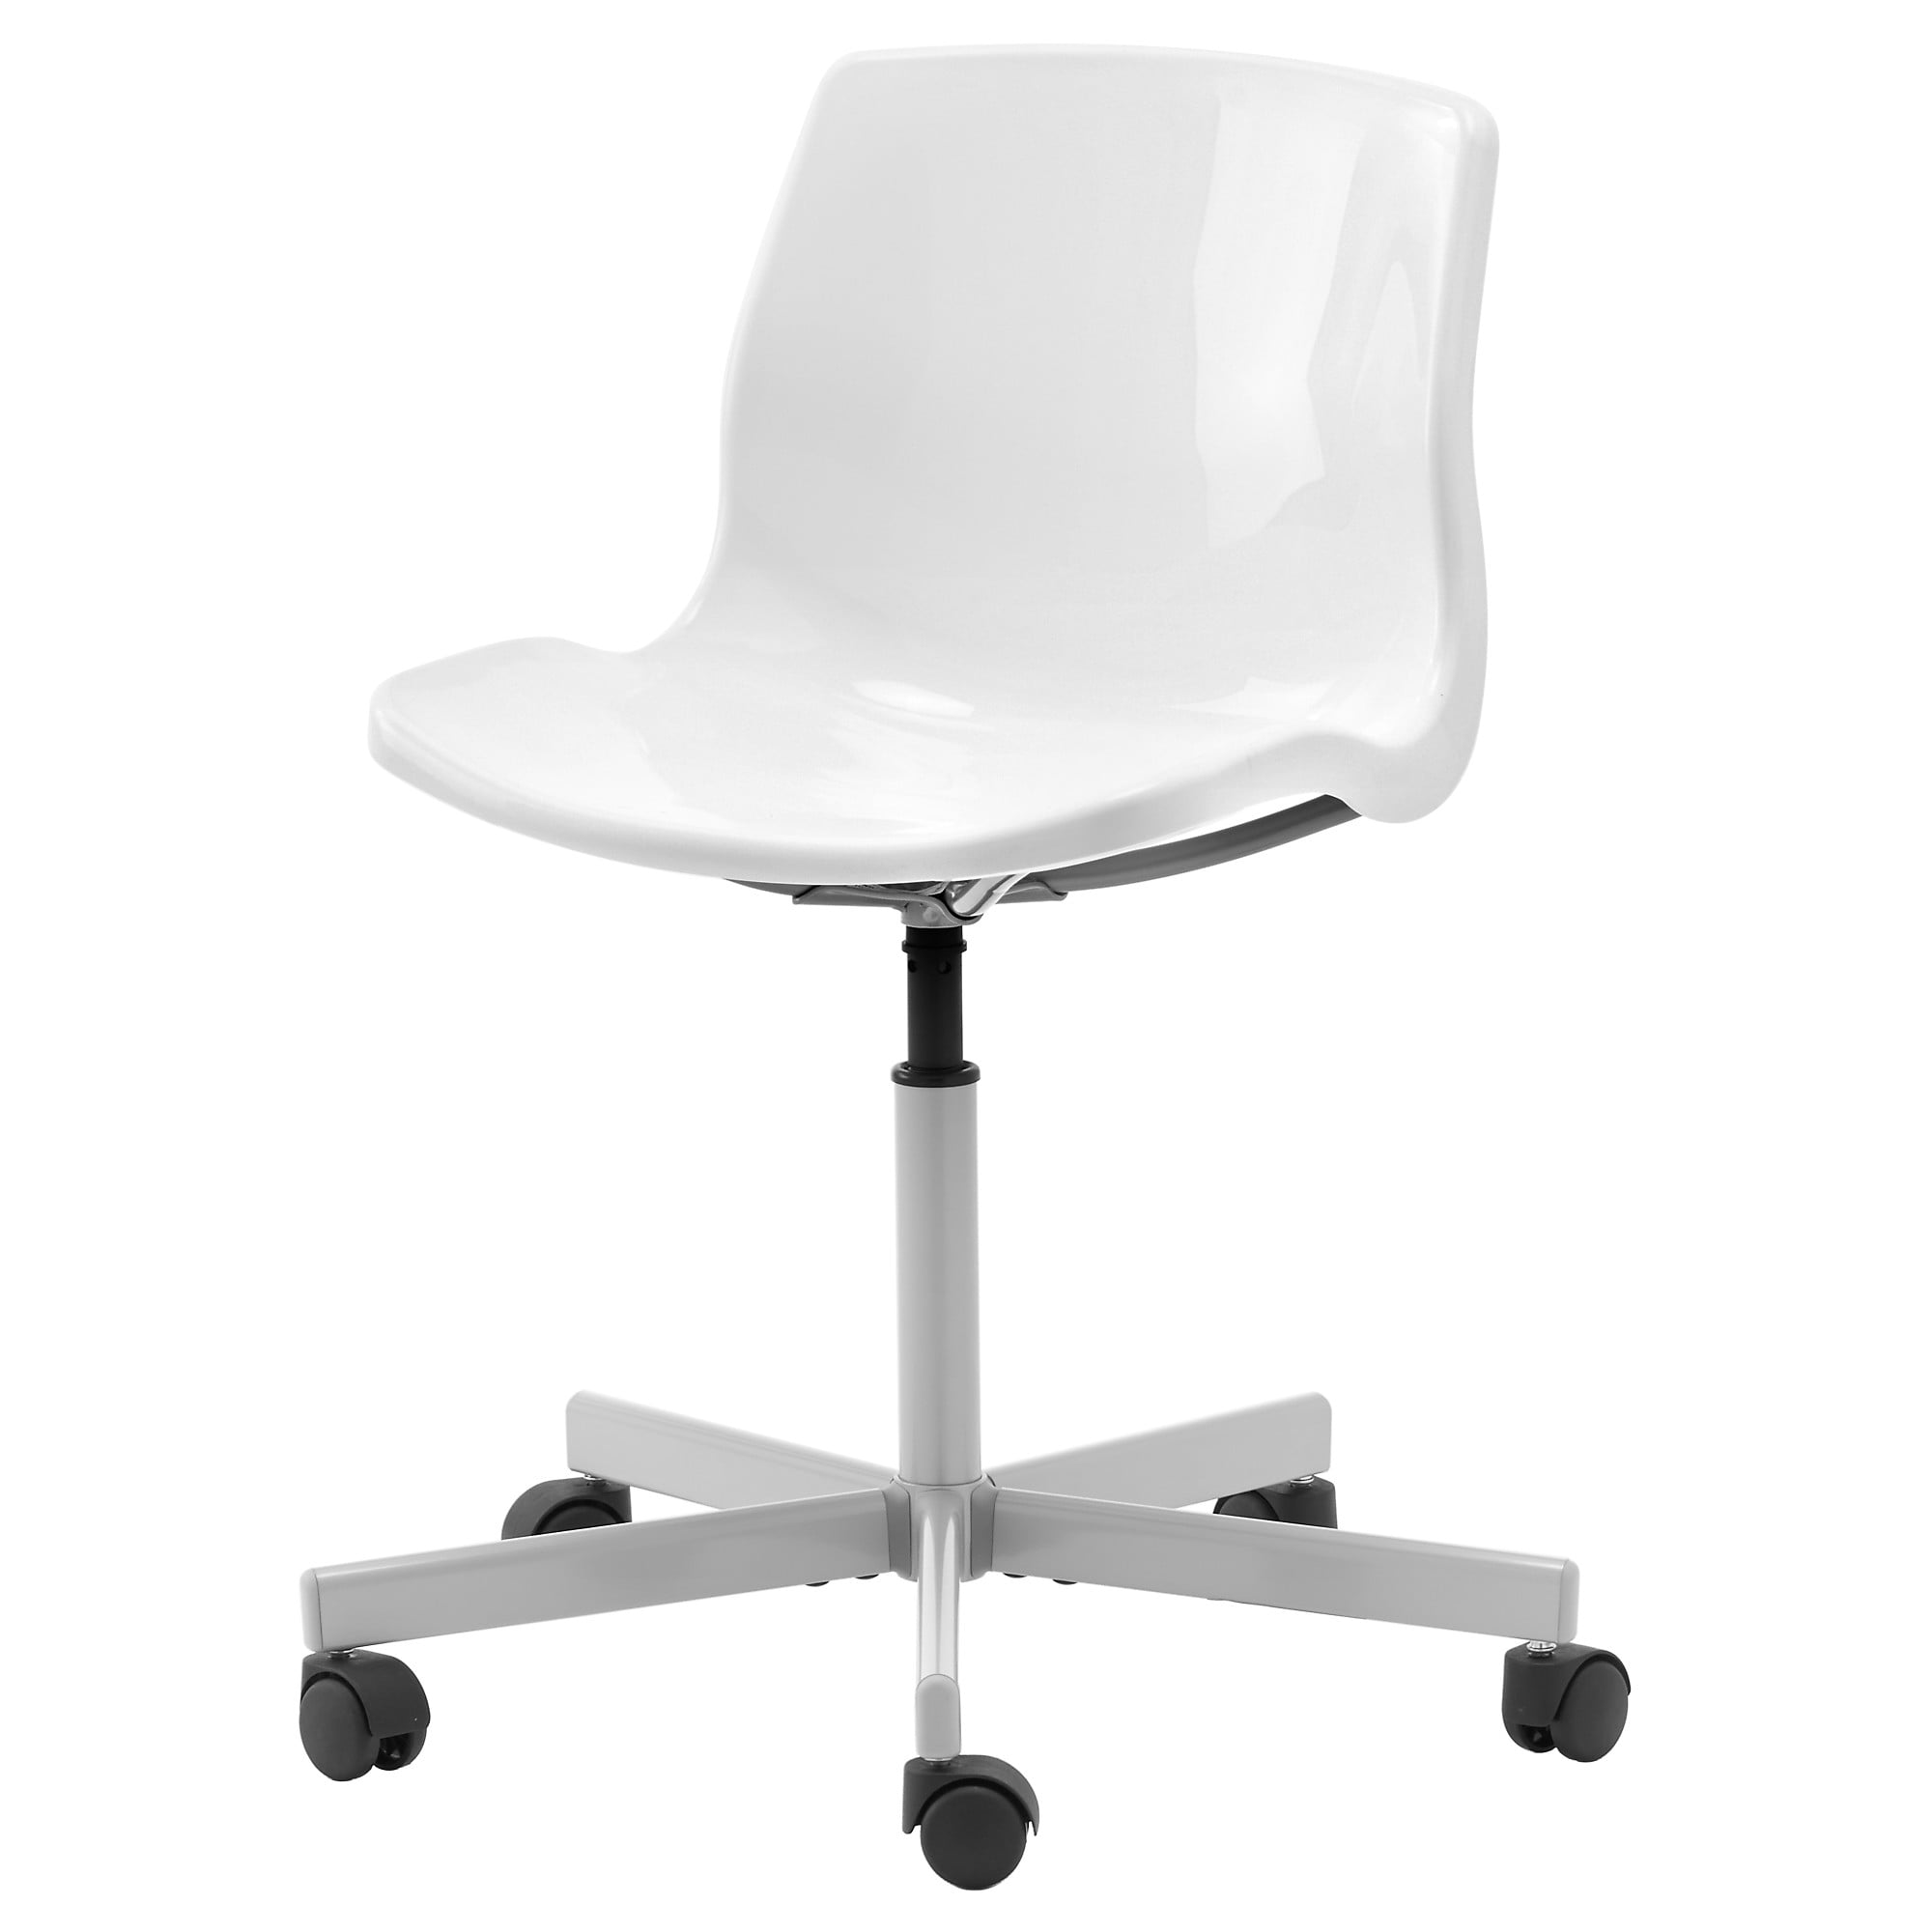 Snille Swivel Chair White White Desk Chair Ikea Office Chair